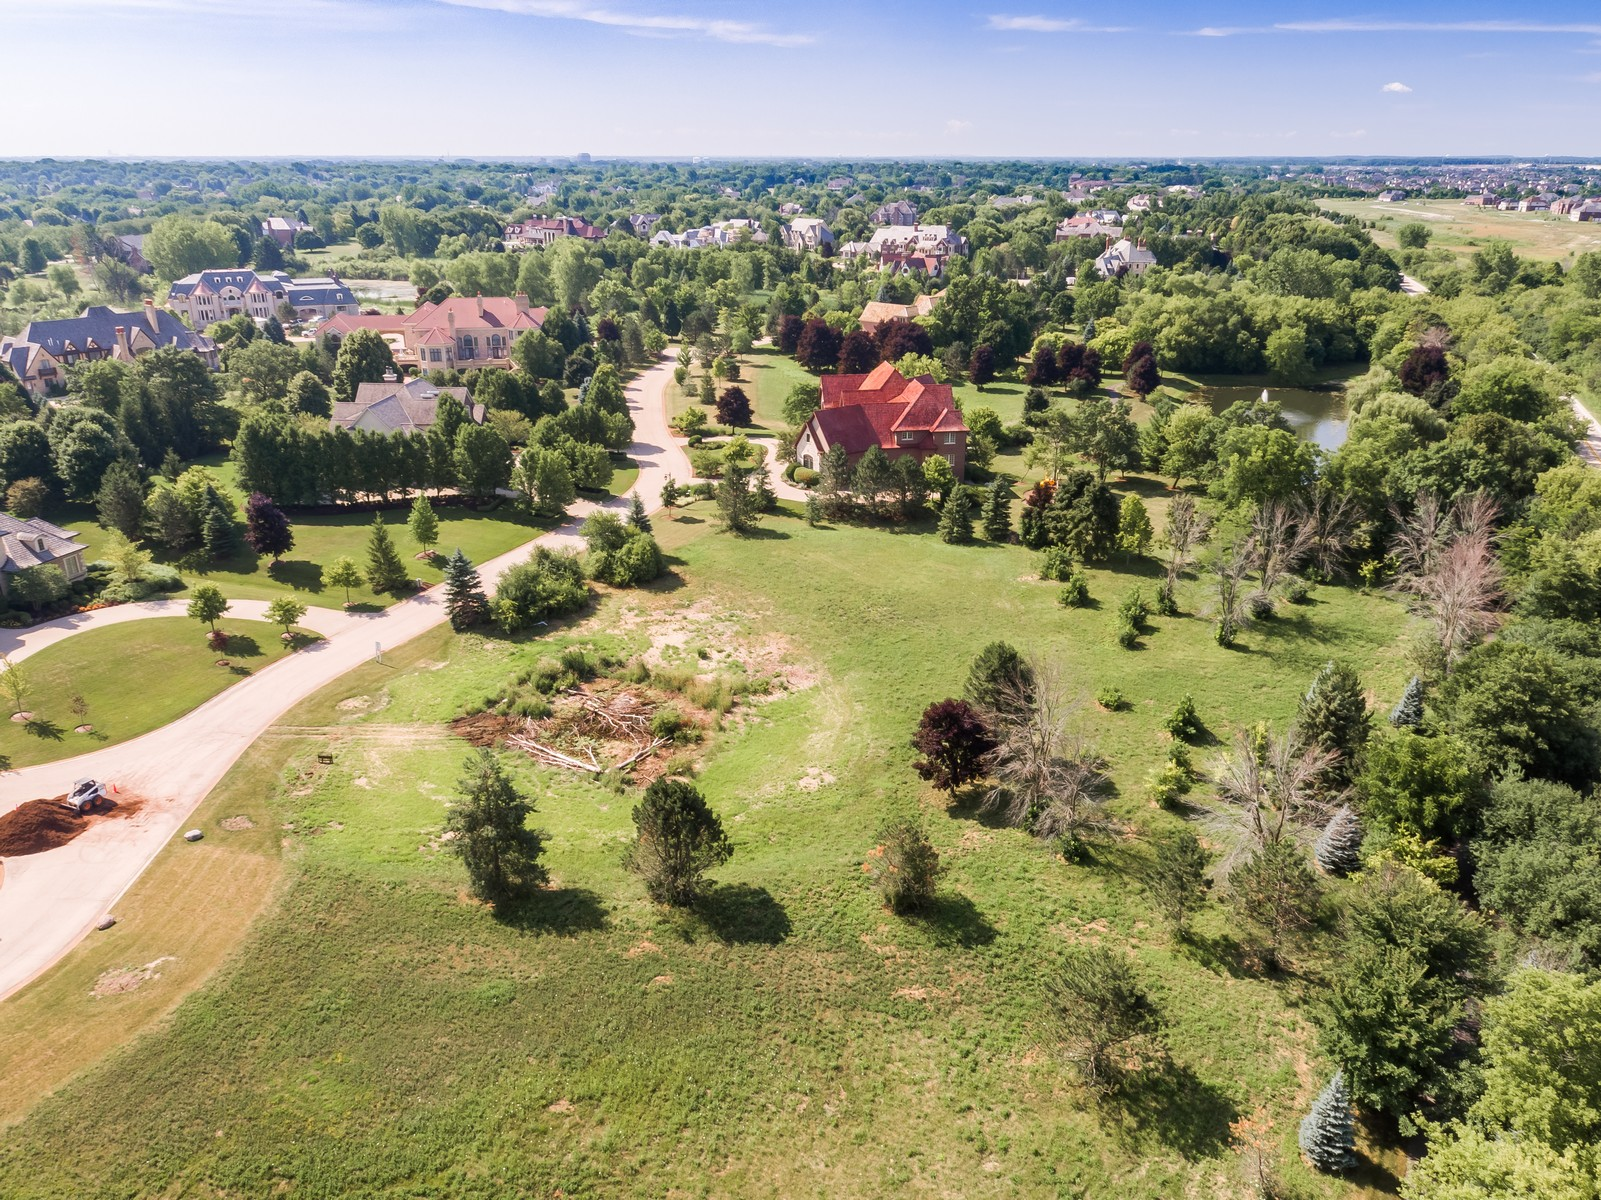 Terrain pour l Vente à Incredible 1.3 Acre Estate Lot in Hidden Lakes 18 Brooke Lane Lot 32 South Barrington, Illinois, 60010 États-Unis